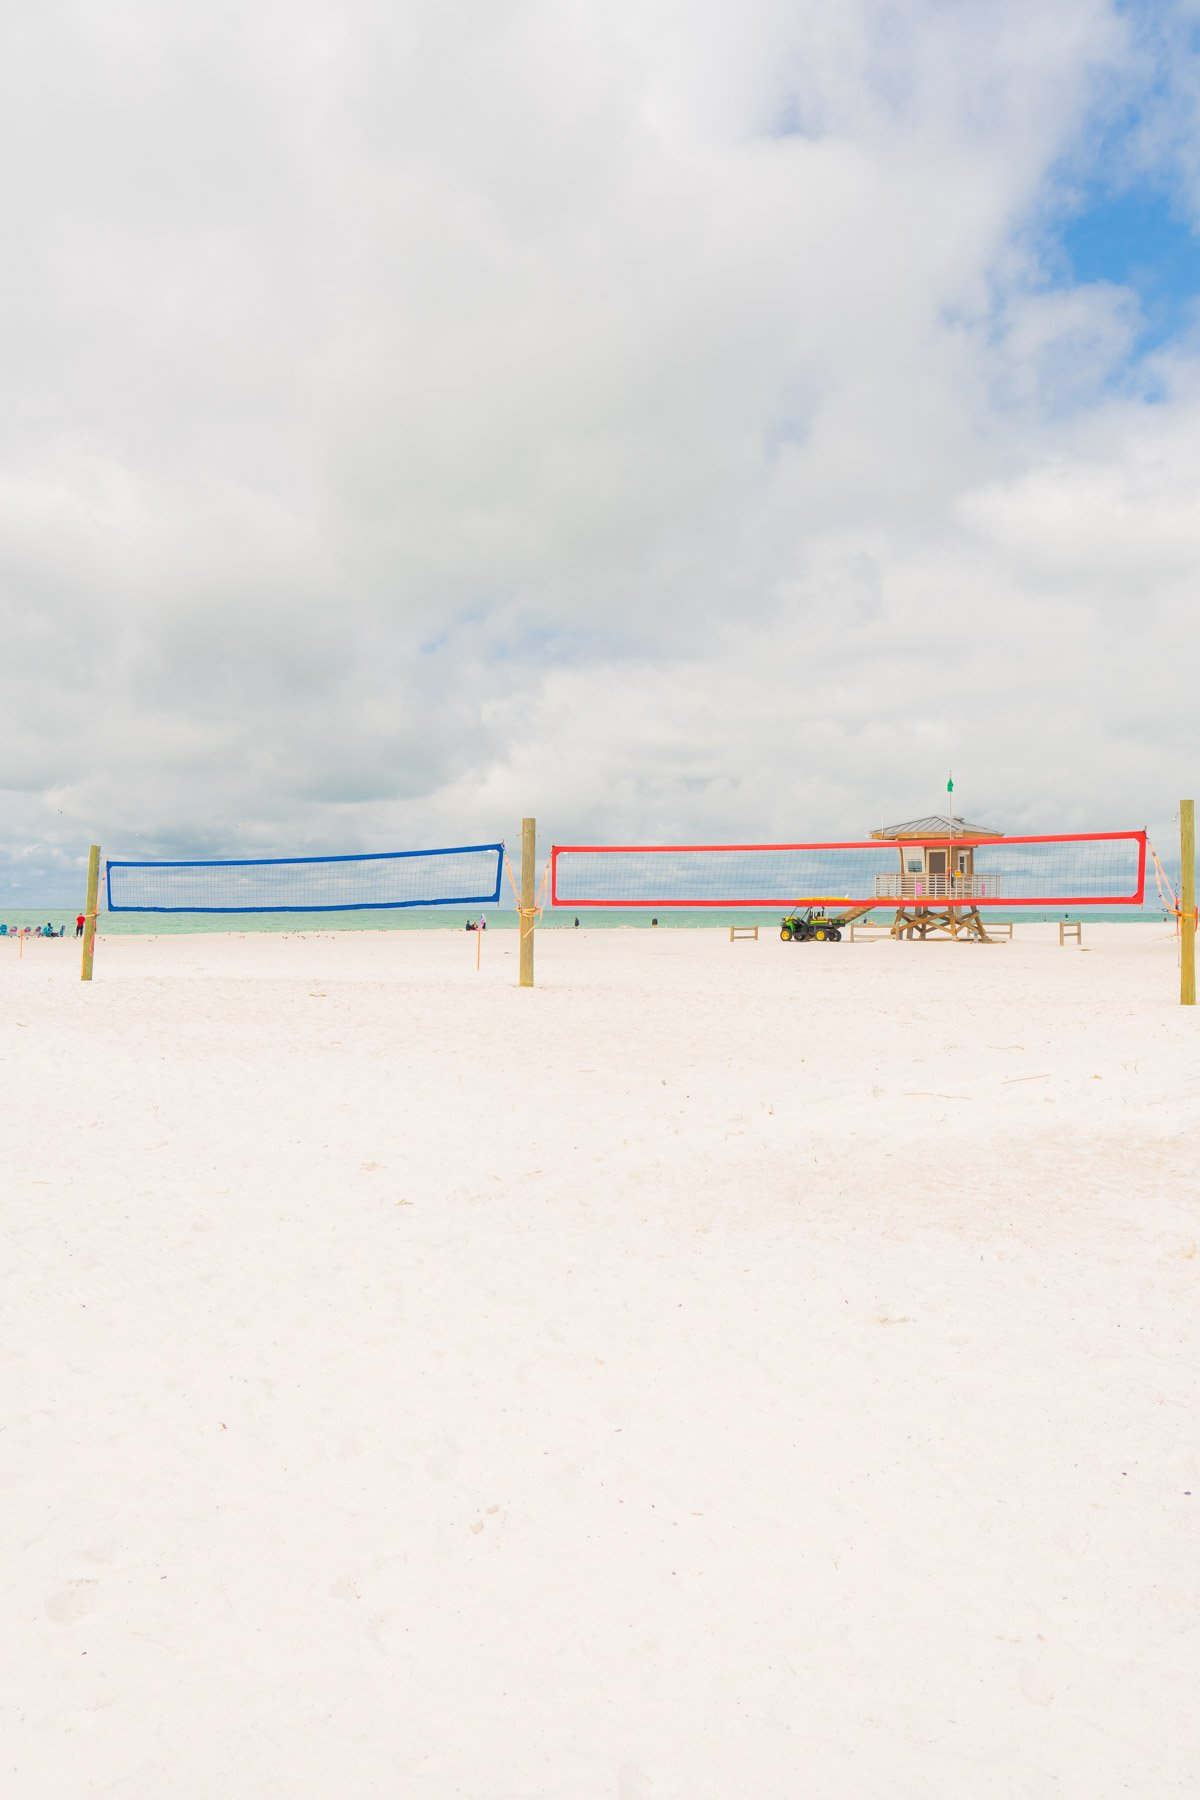 Sand volleyball nets on a beach